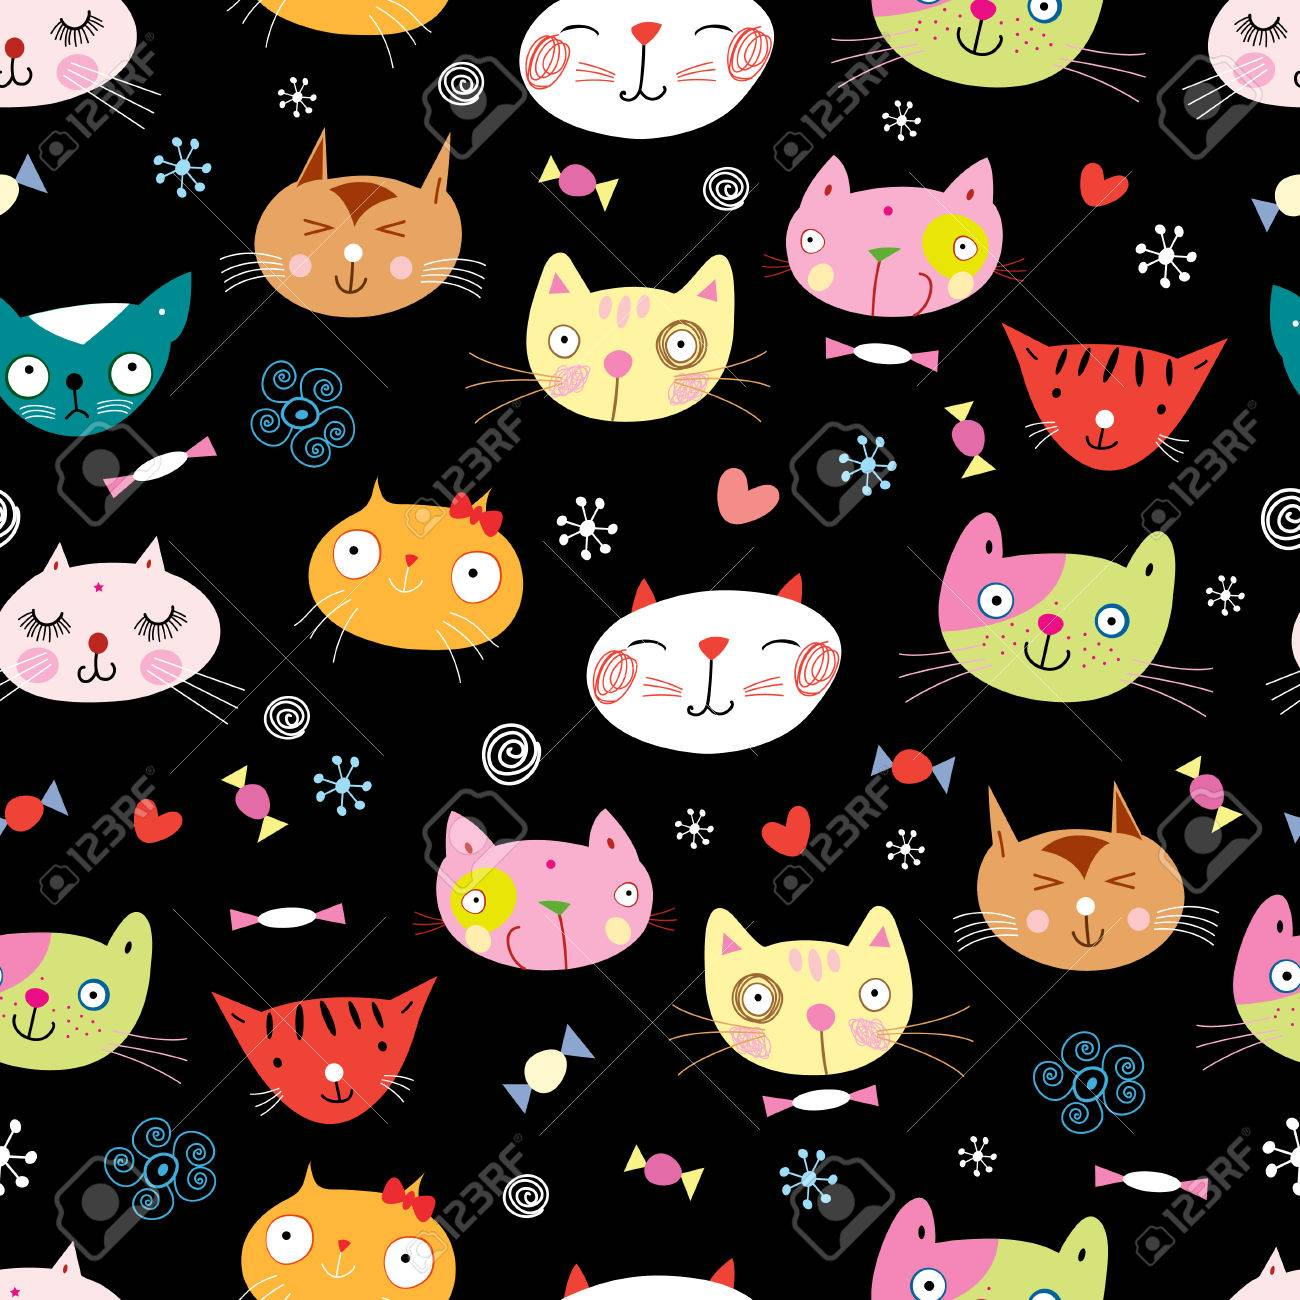 texture of the fun loving cats - 32209418